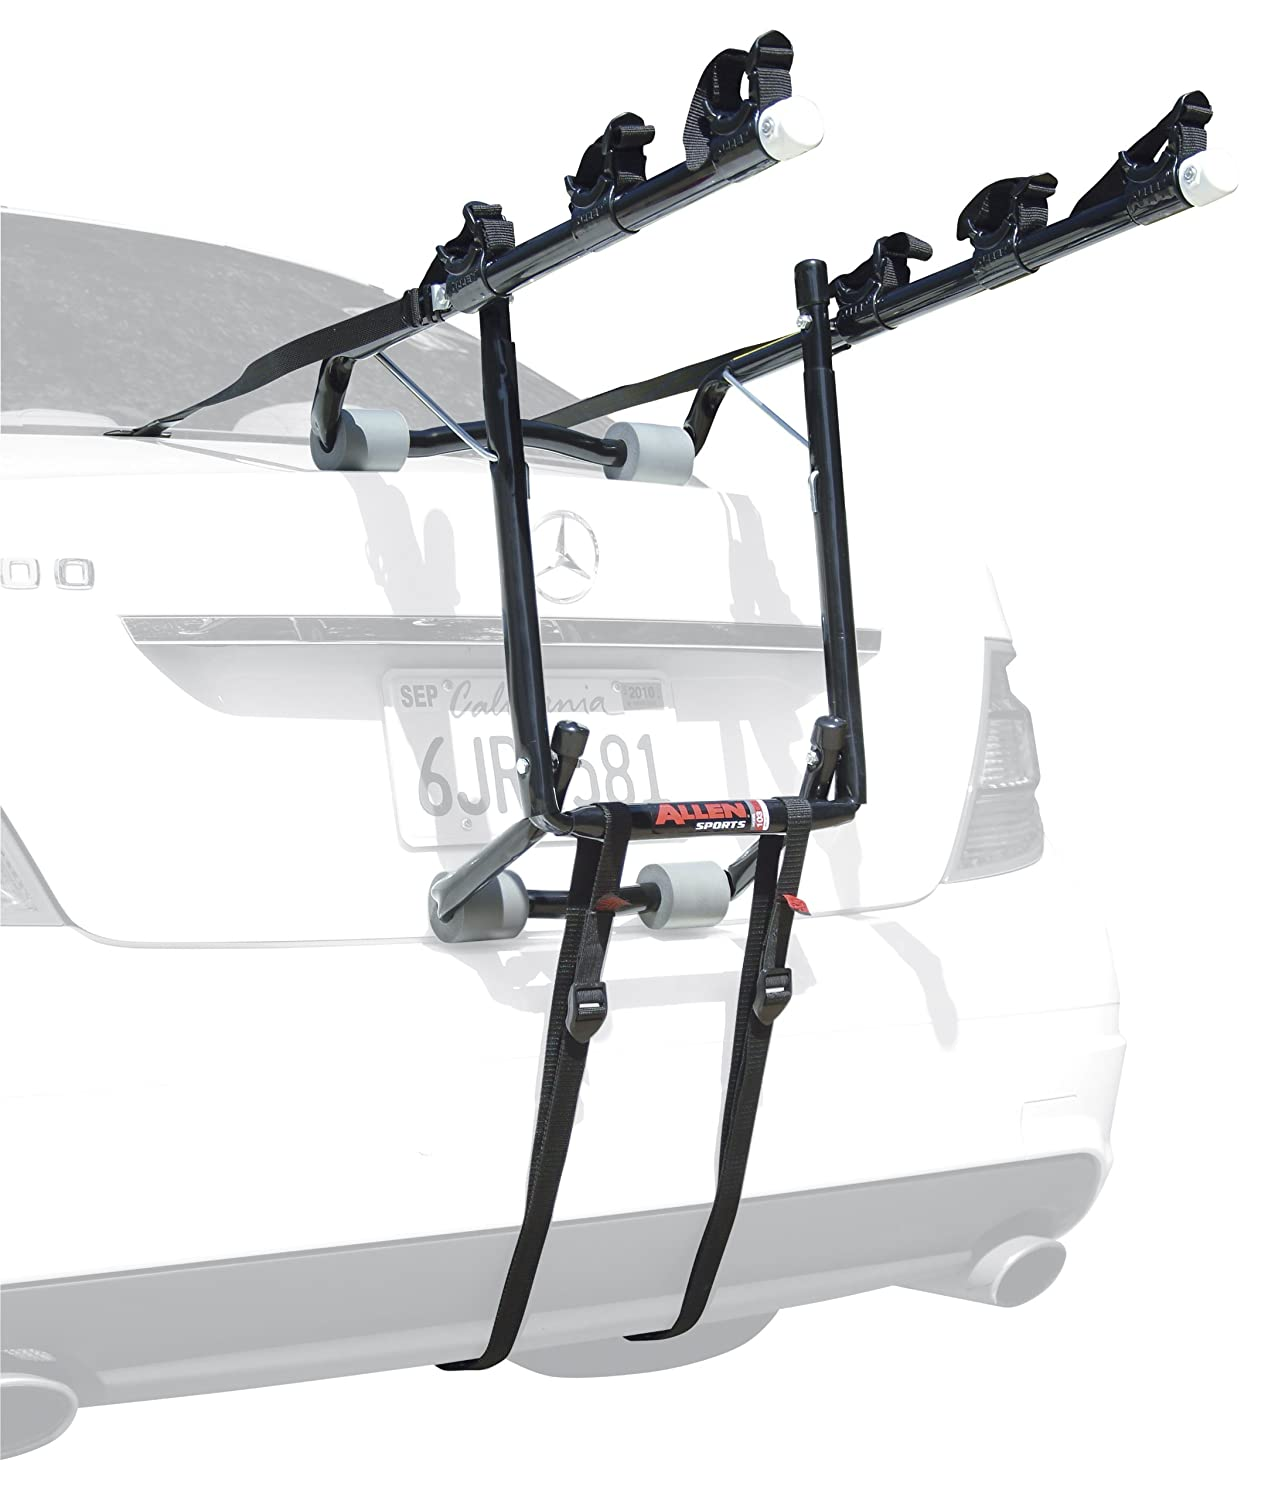 towbar racks plus cars of trunk rack bicycle car full size for also bike